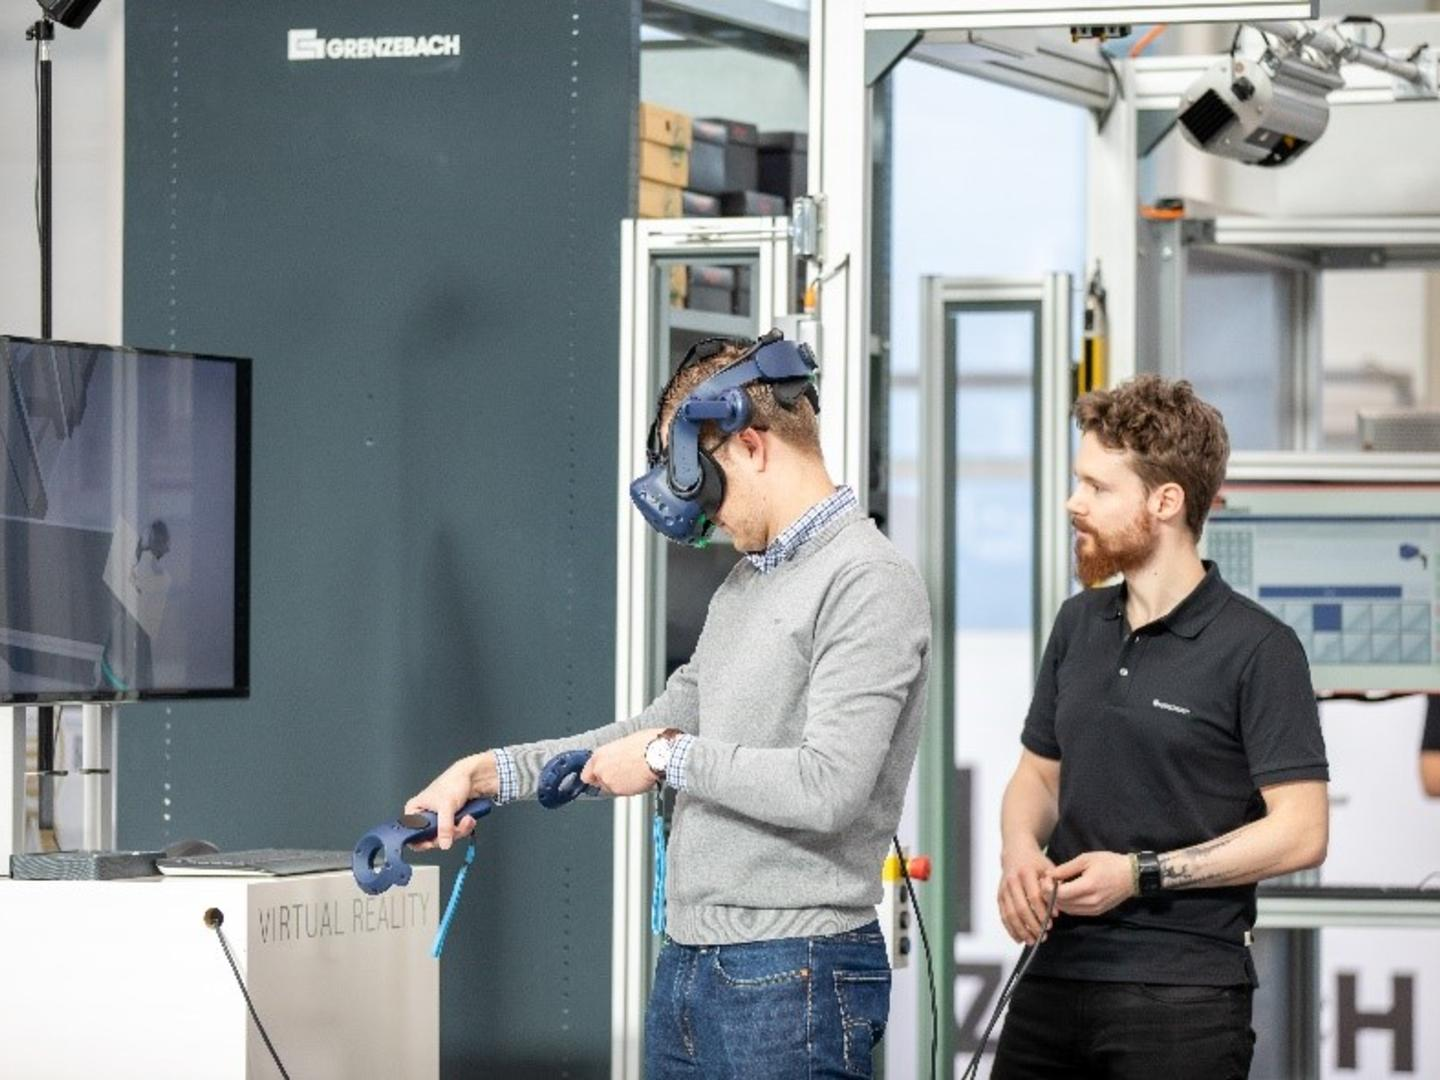 GEODIS teams up with Grenzebach for goods-to-person robotics program designed to increase teammate productivity, bolster safety